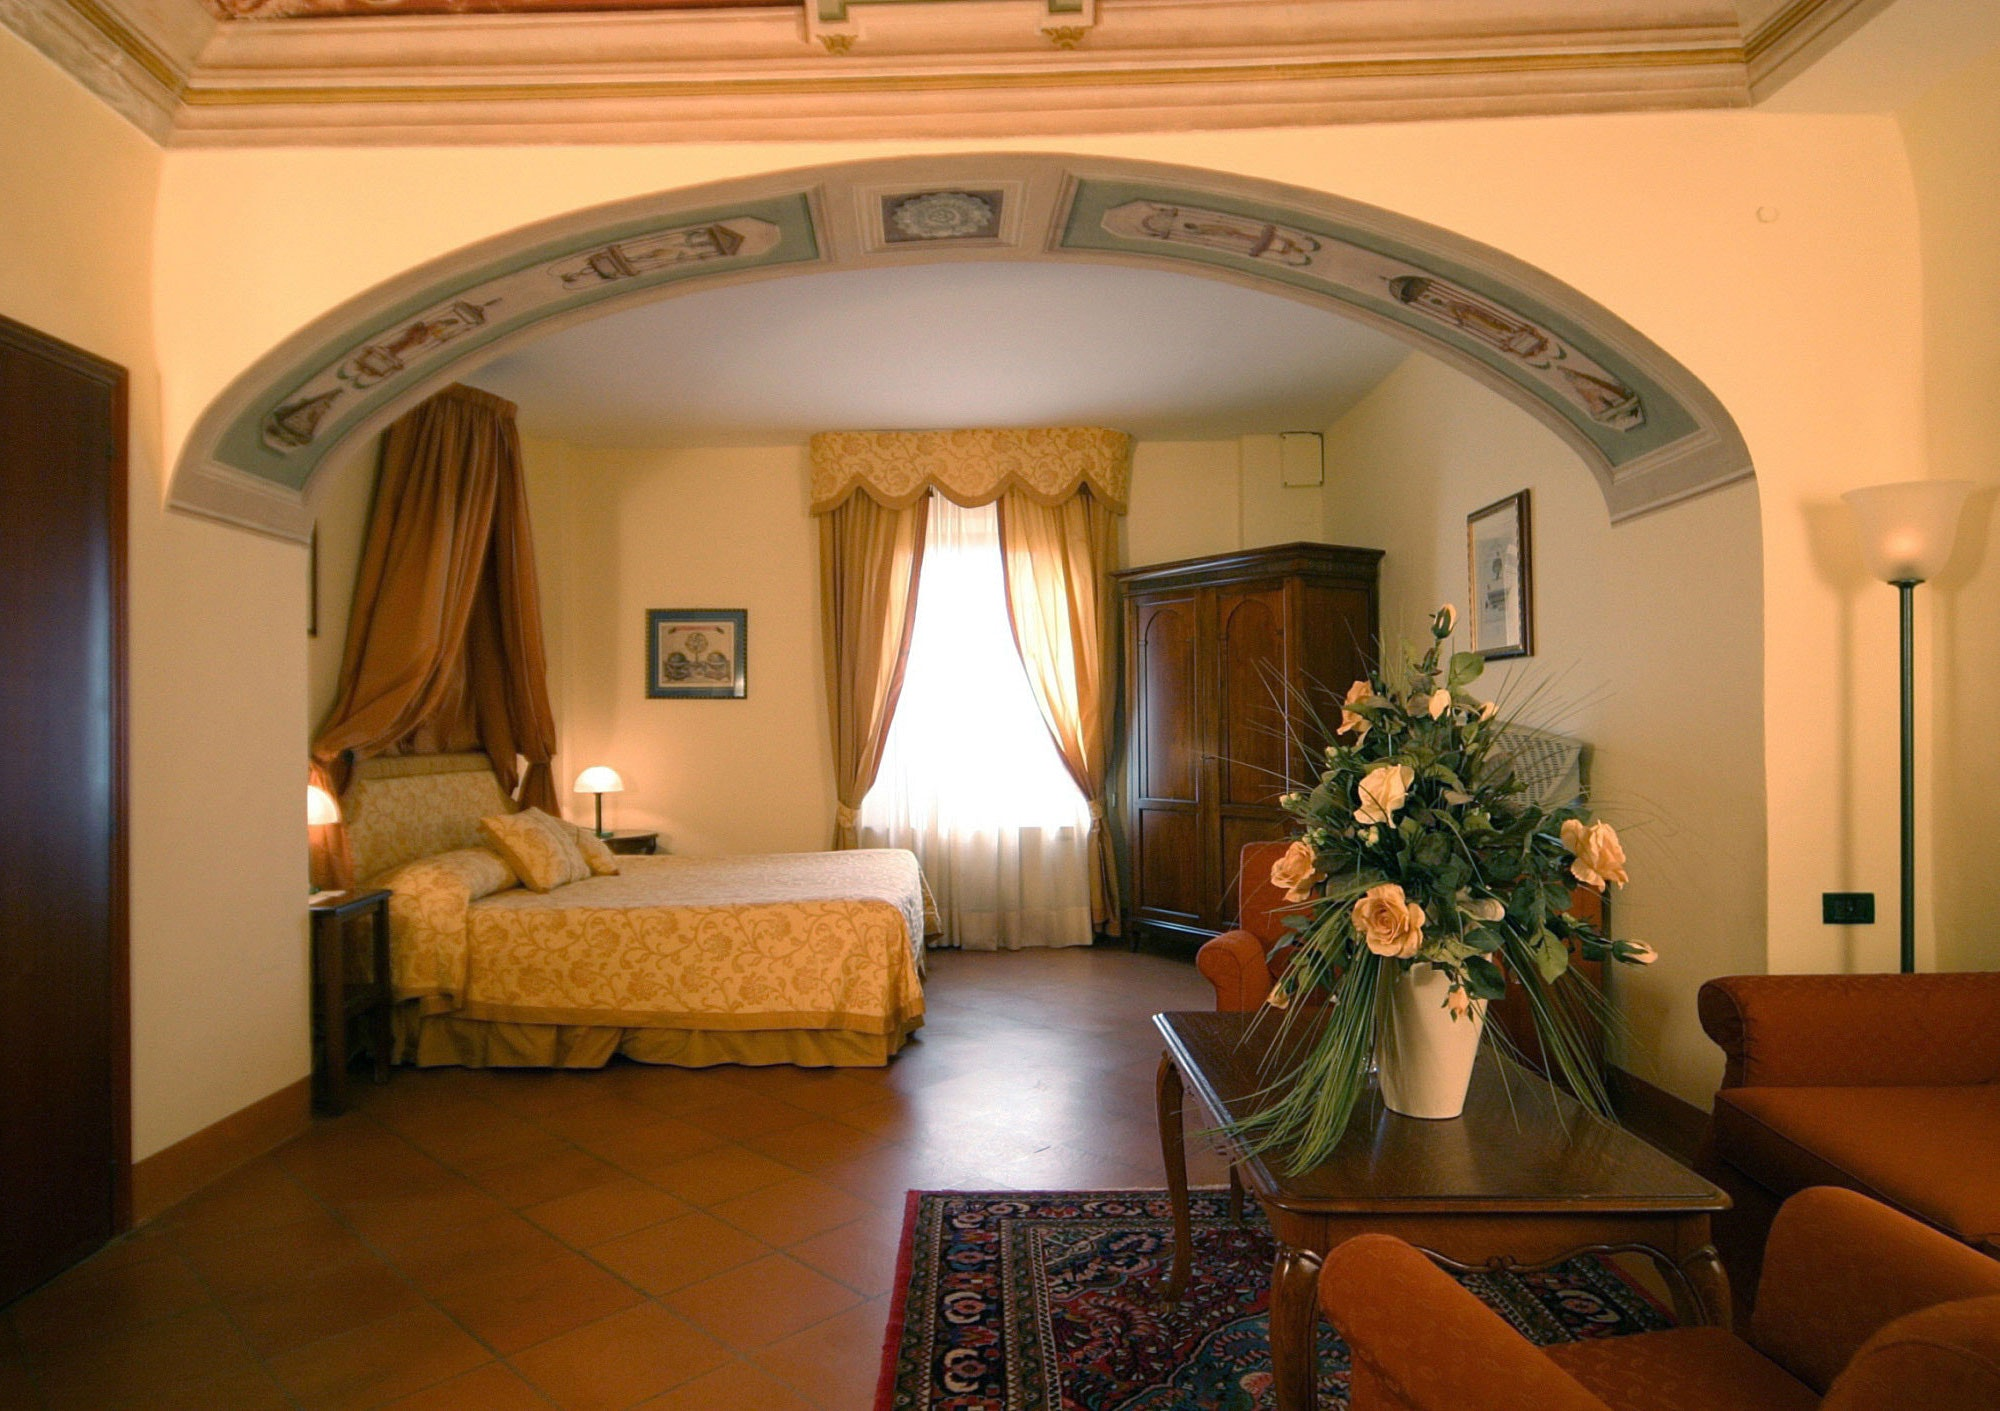 Hotel Romantici In Toscana. Ask The Tuscany Experts On Our Forum ...